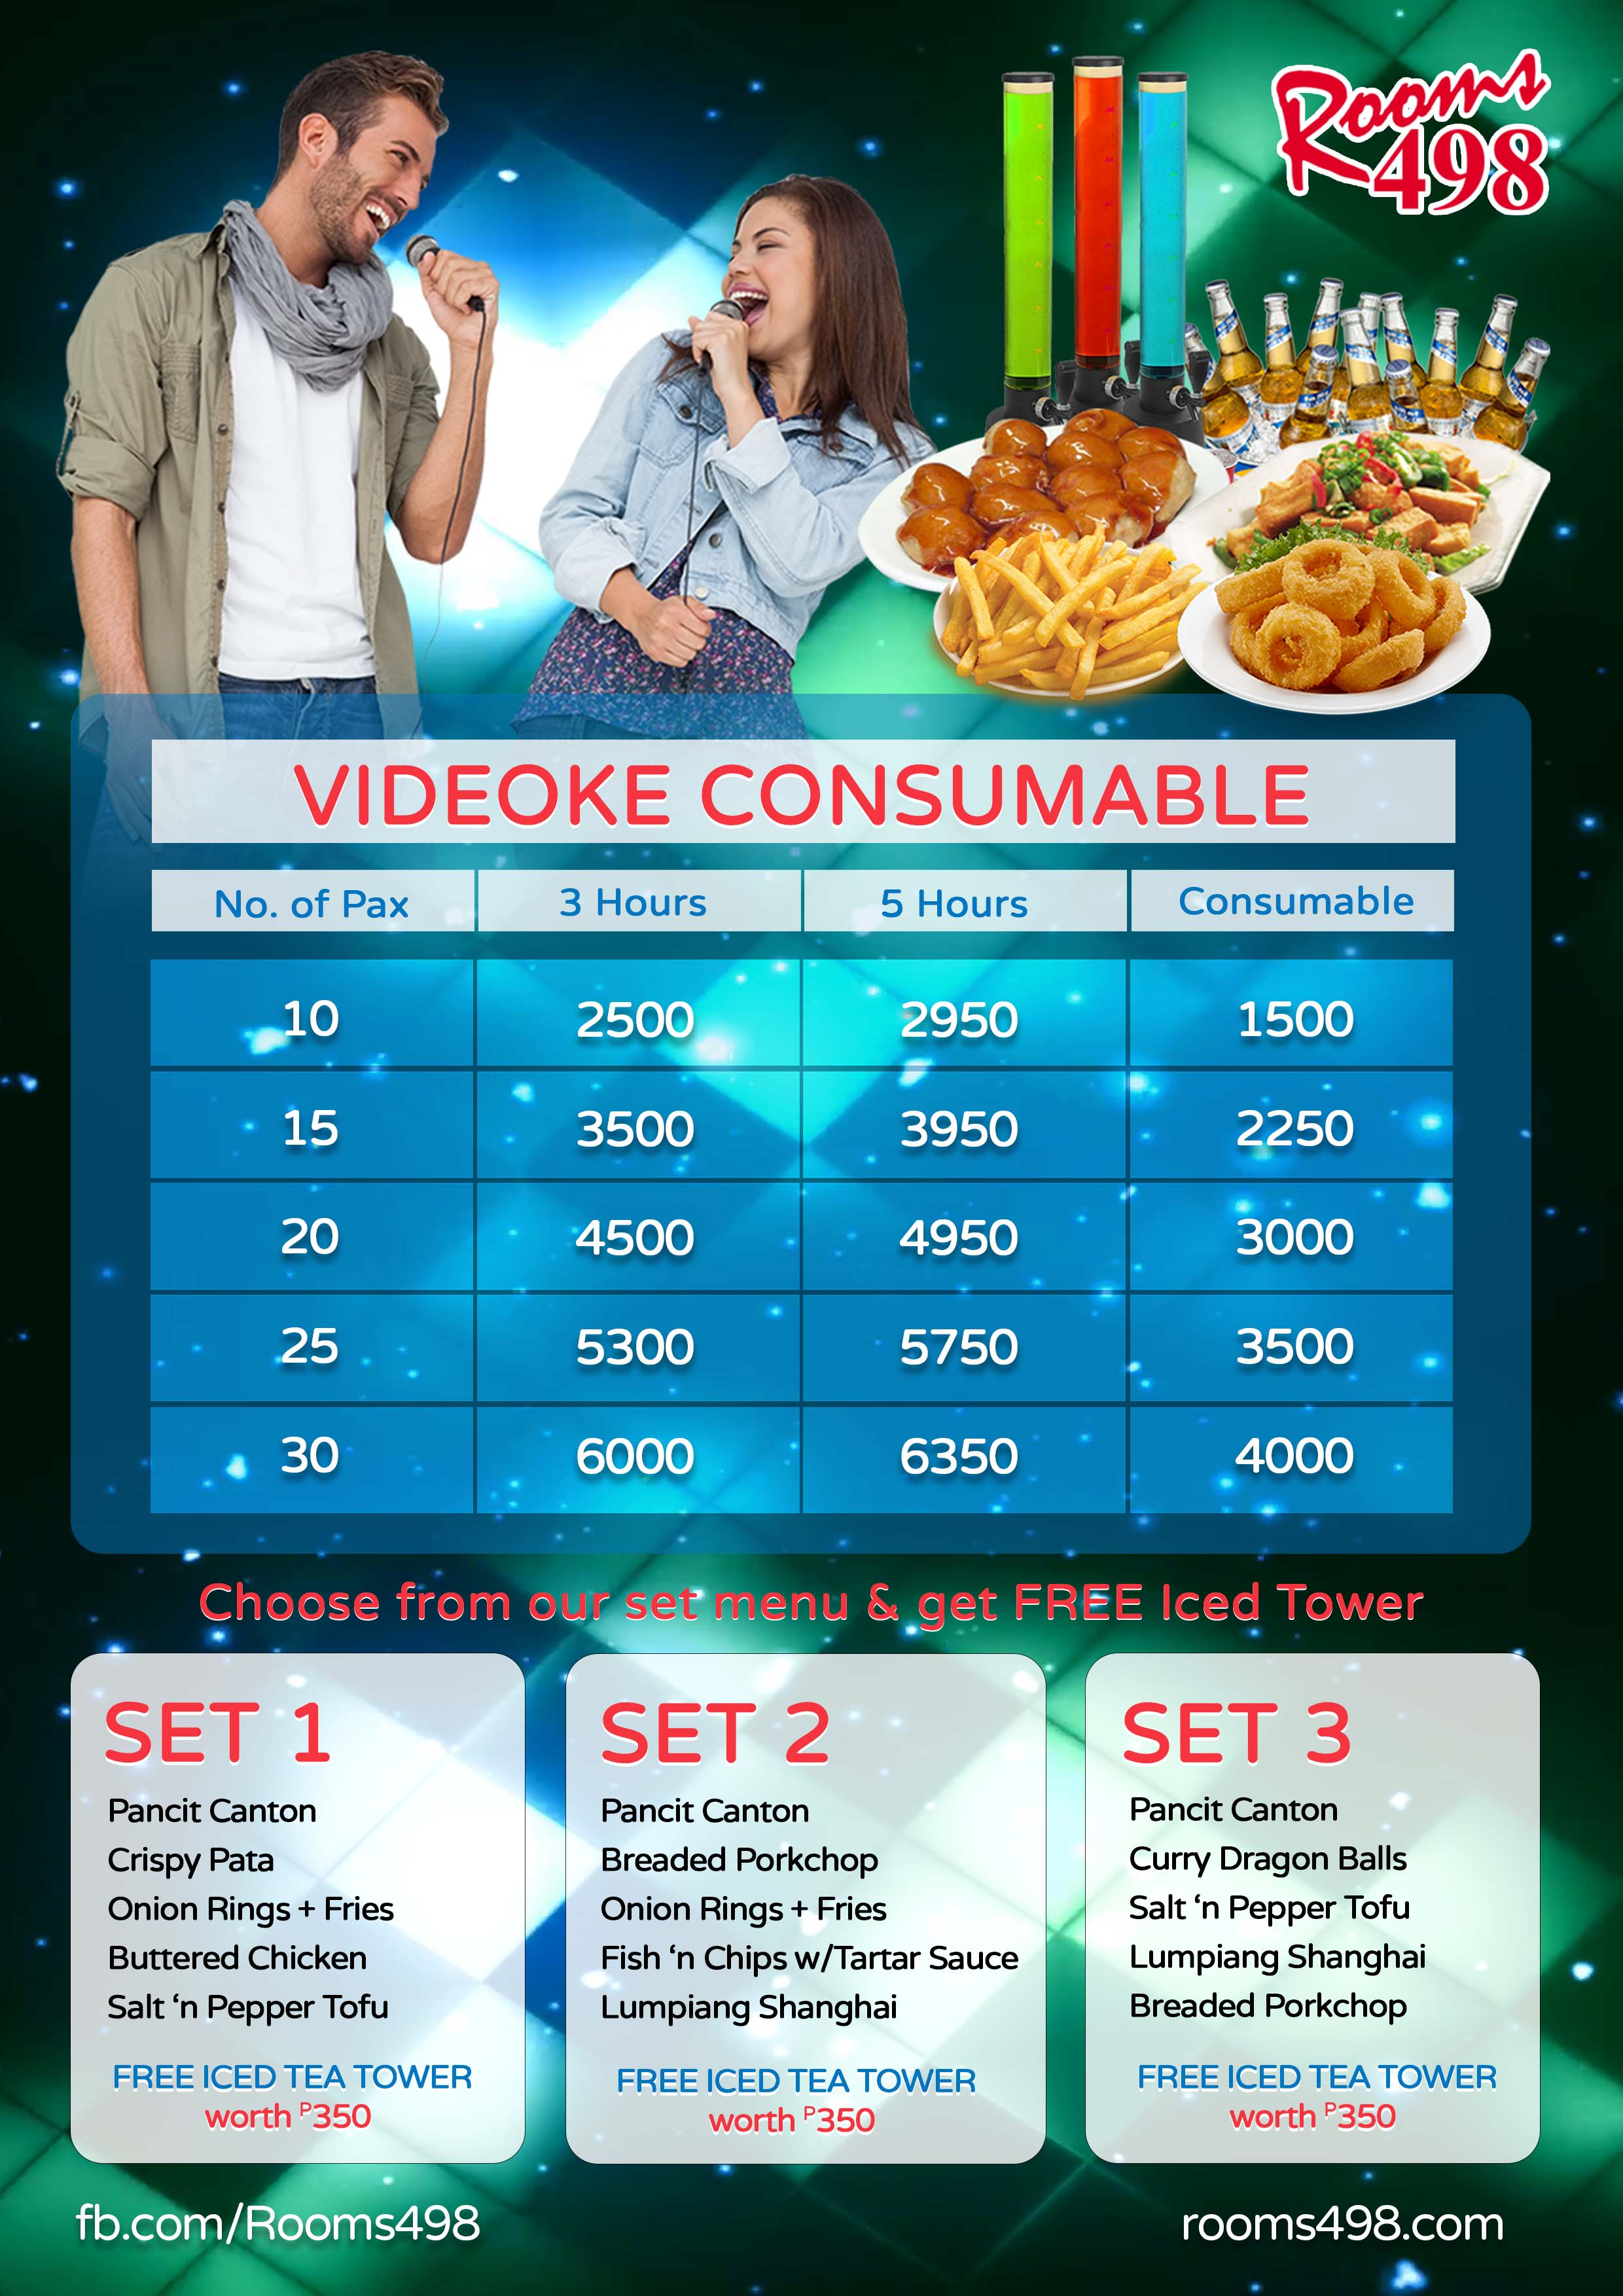 Rooms498 Videoke Consumables